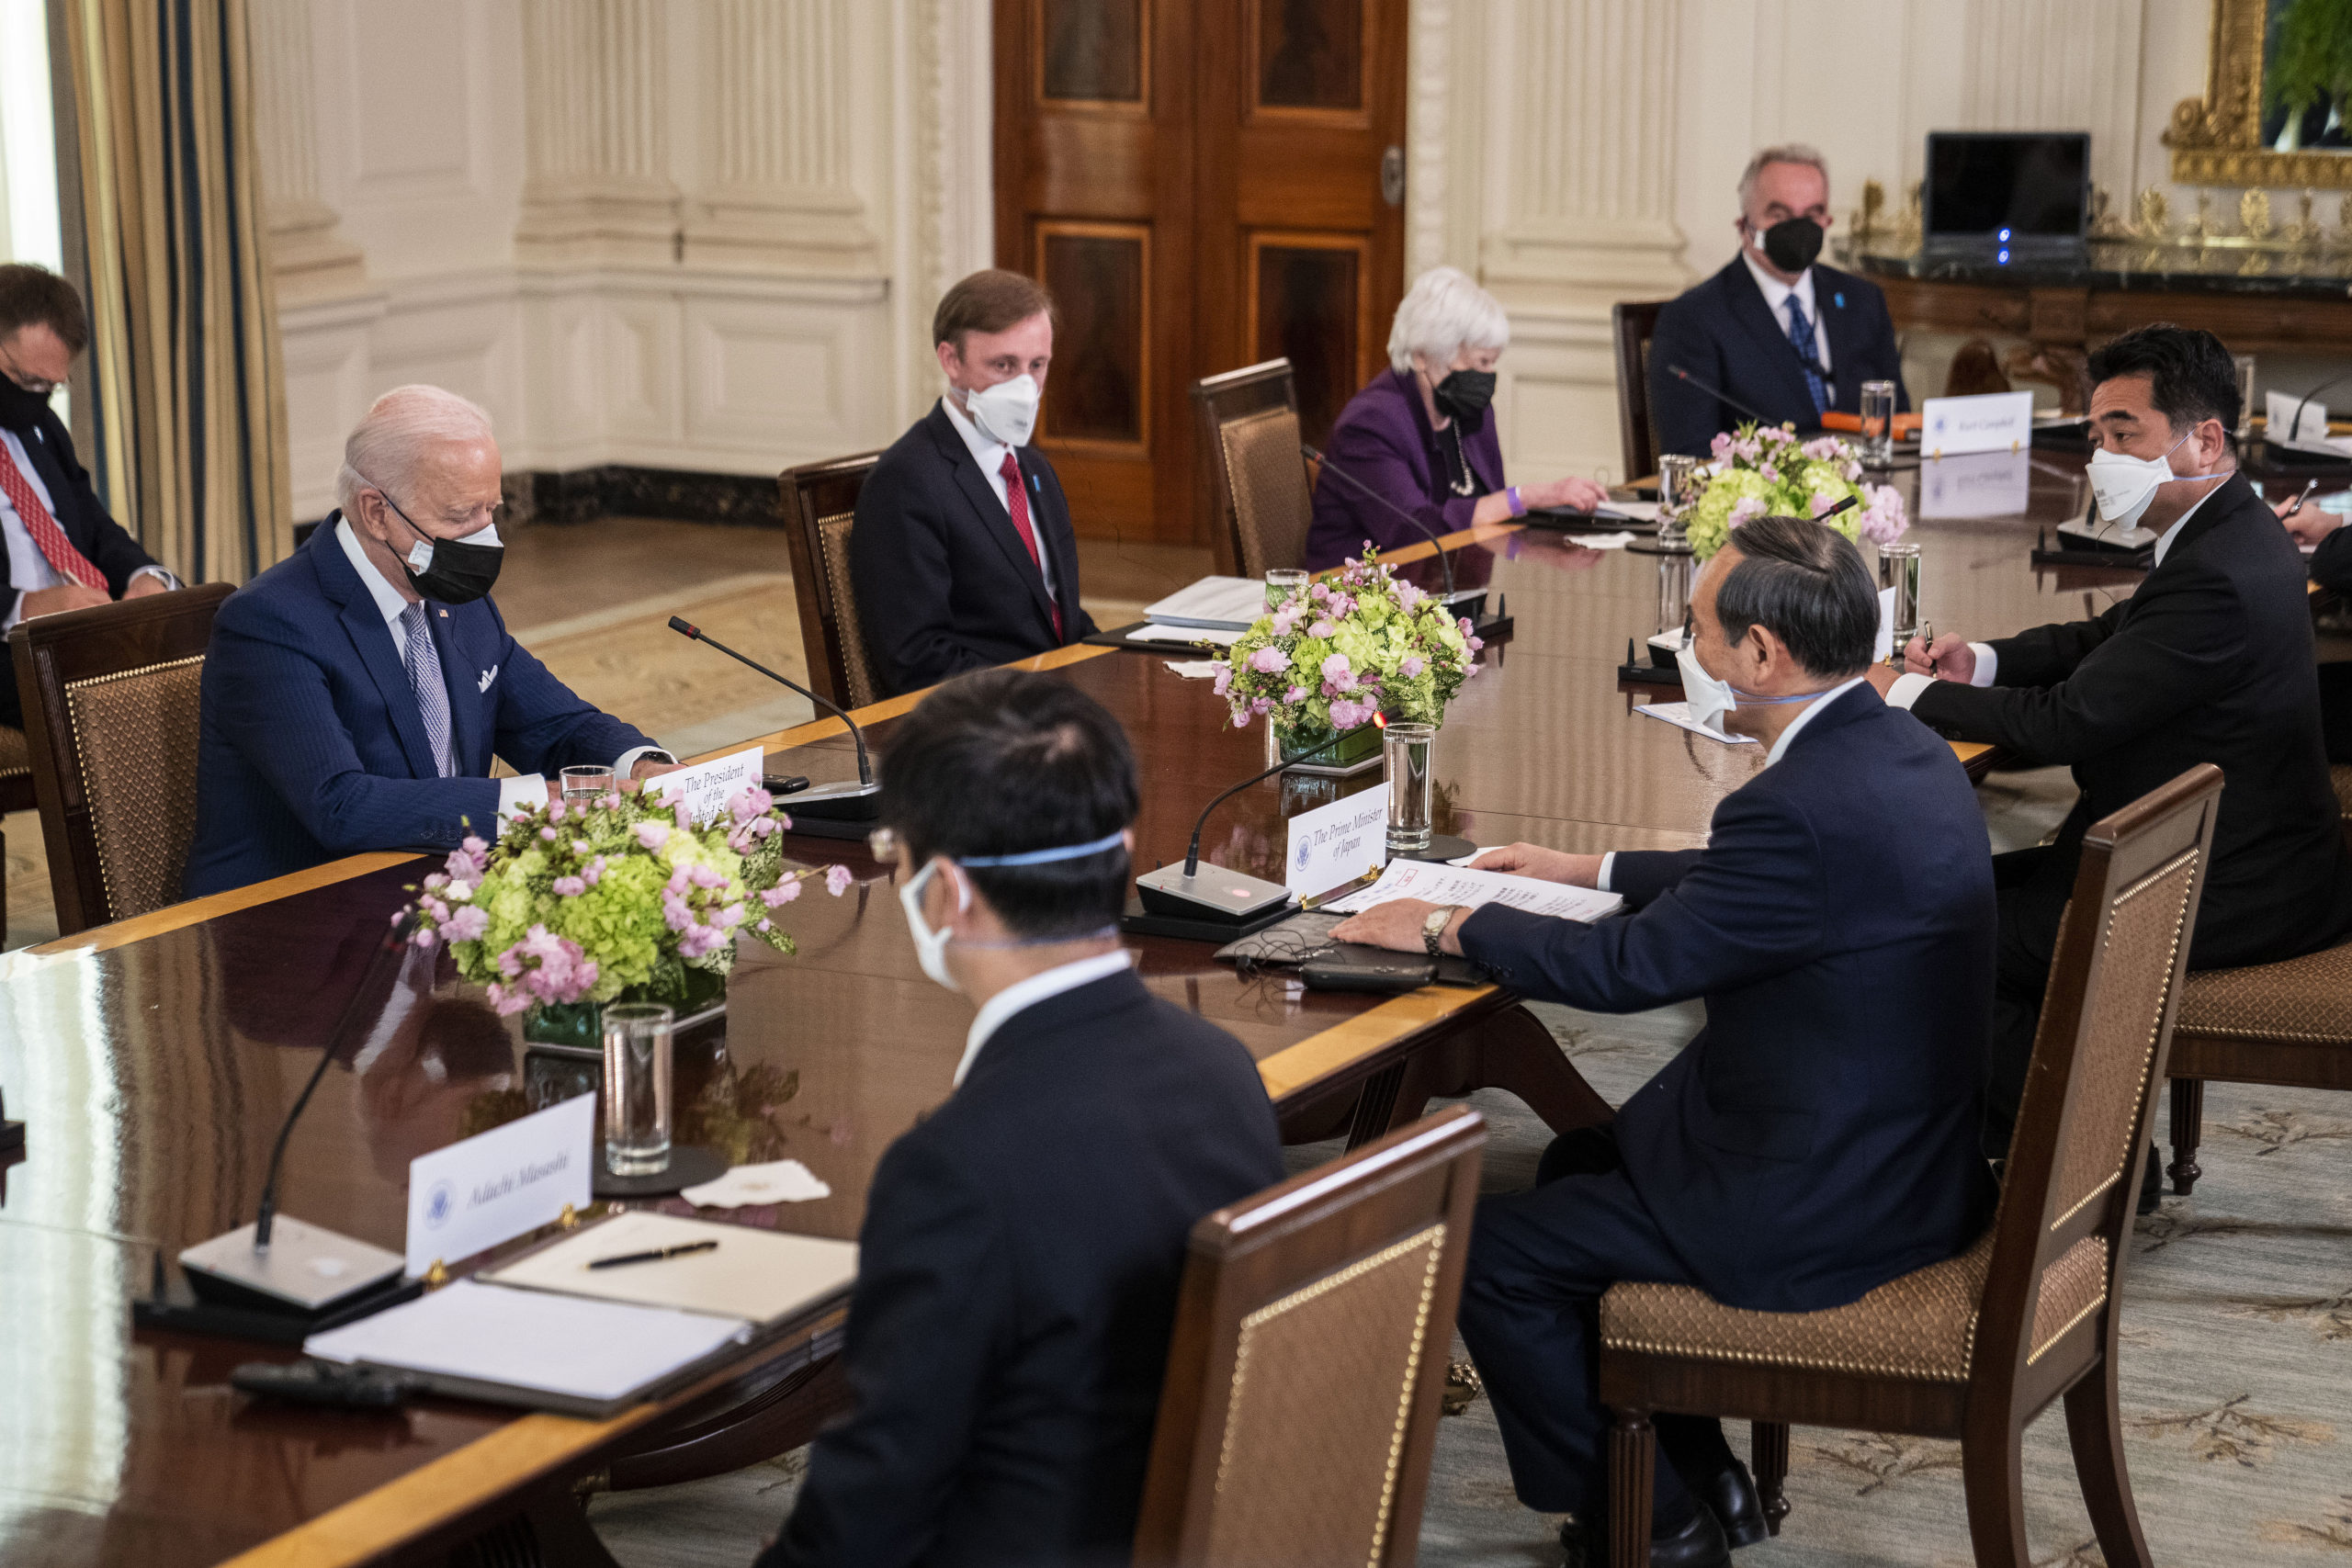 President Joe Biden, Treasury Secretary Janet Yellen and other U.S. officials meet with Japanese Prime Minister Yoshihide Suga at the White House on April 16. (Doug Mills/Pool/Getty Images)